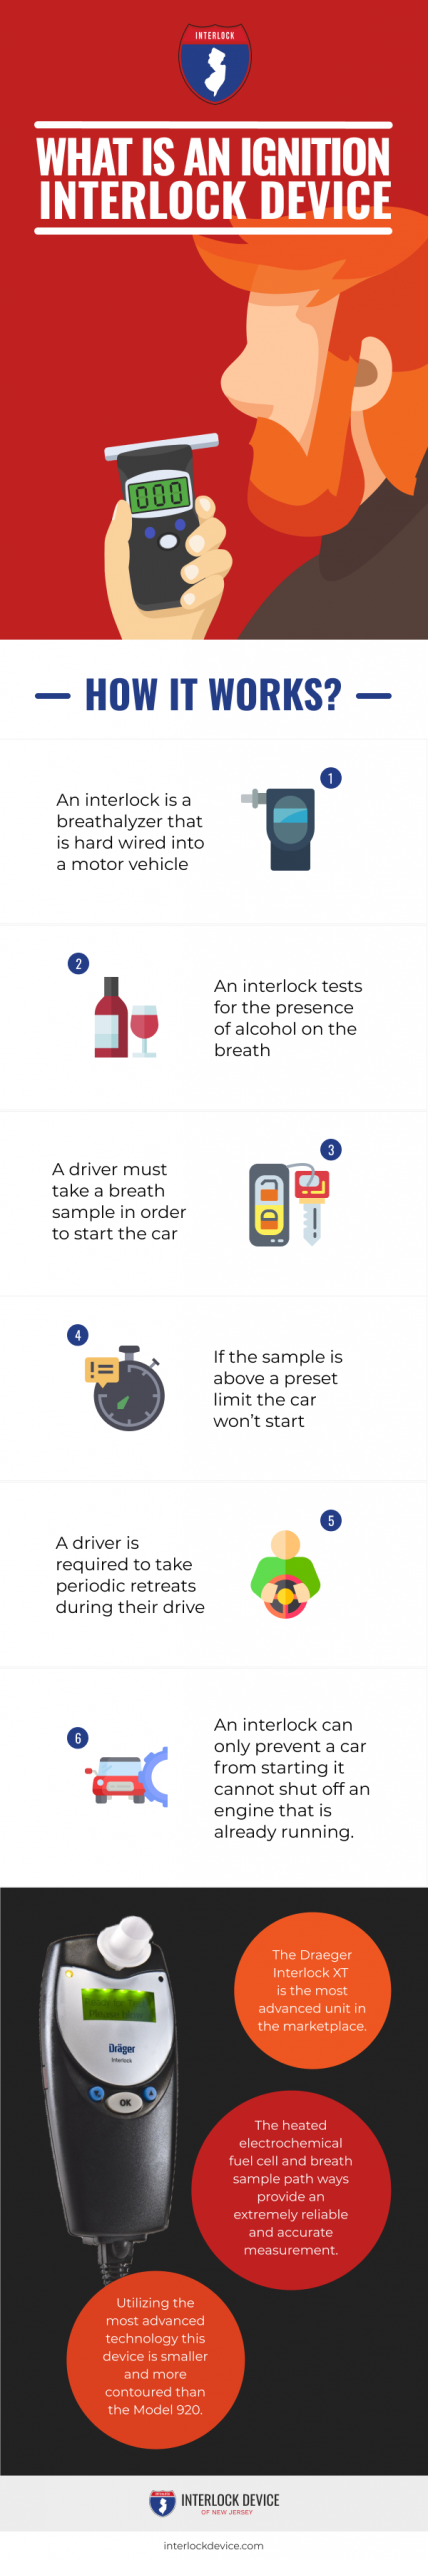 What Is An Ignition Interlock Device  How Does It Work   Infographic